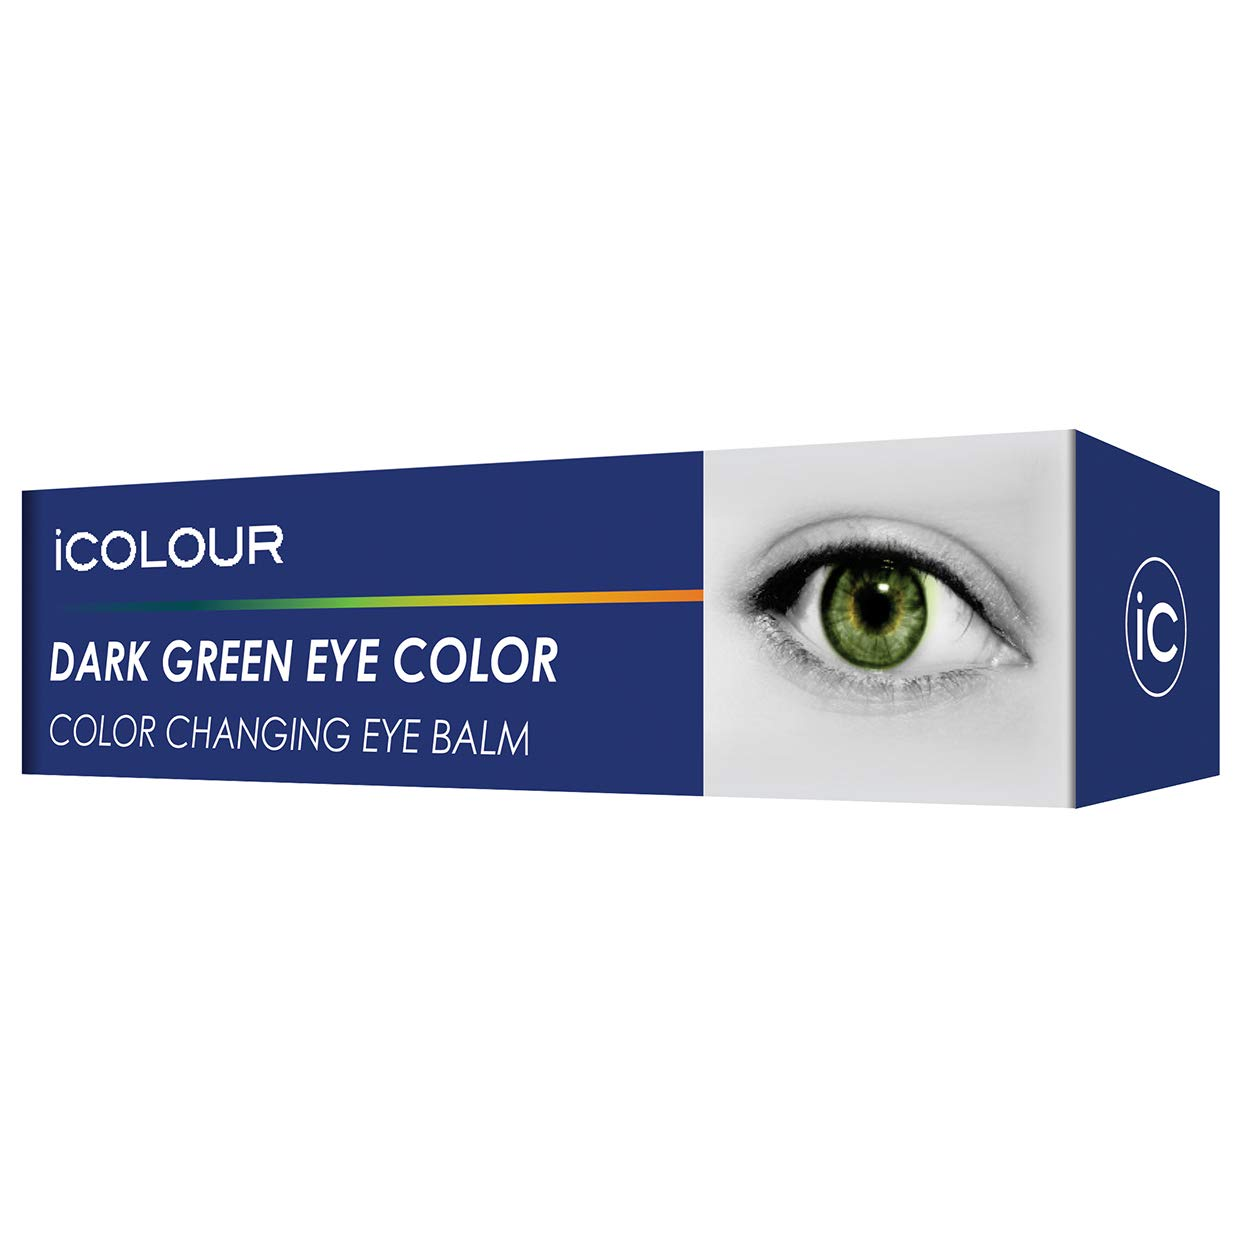 iCOLOUR Color Changing Eye Balm - Change Your Eye Color Naturally - 1 Month Supply - 4.3 g (Dark Green)